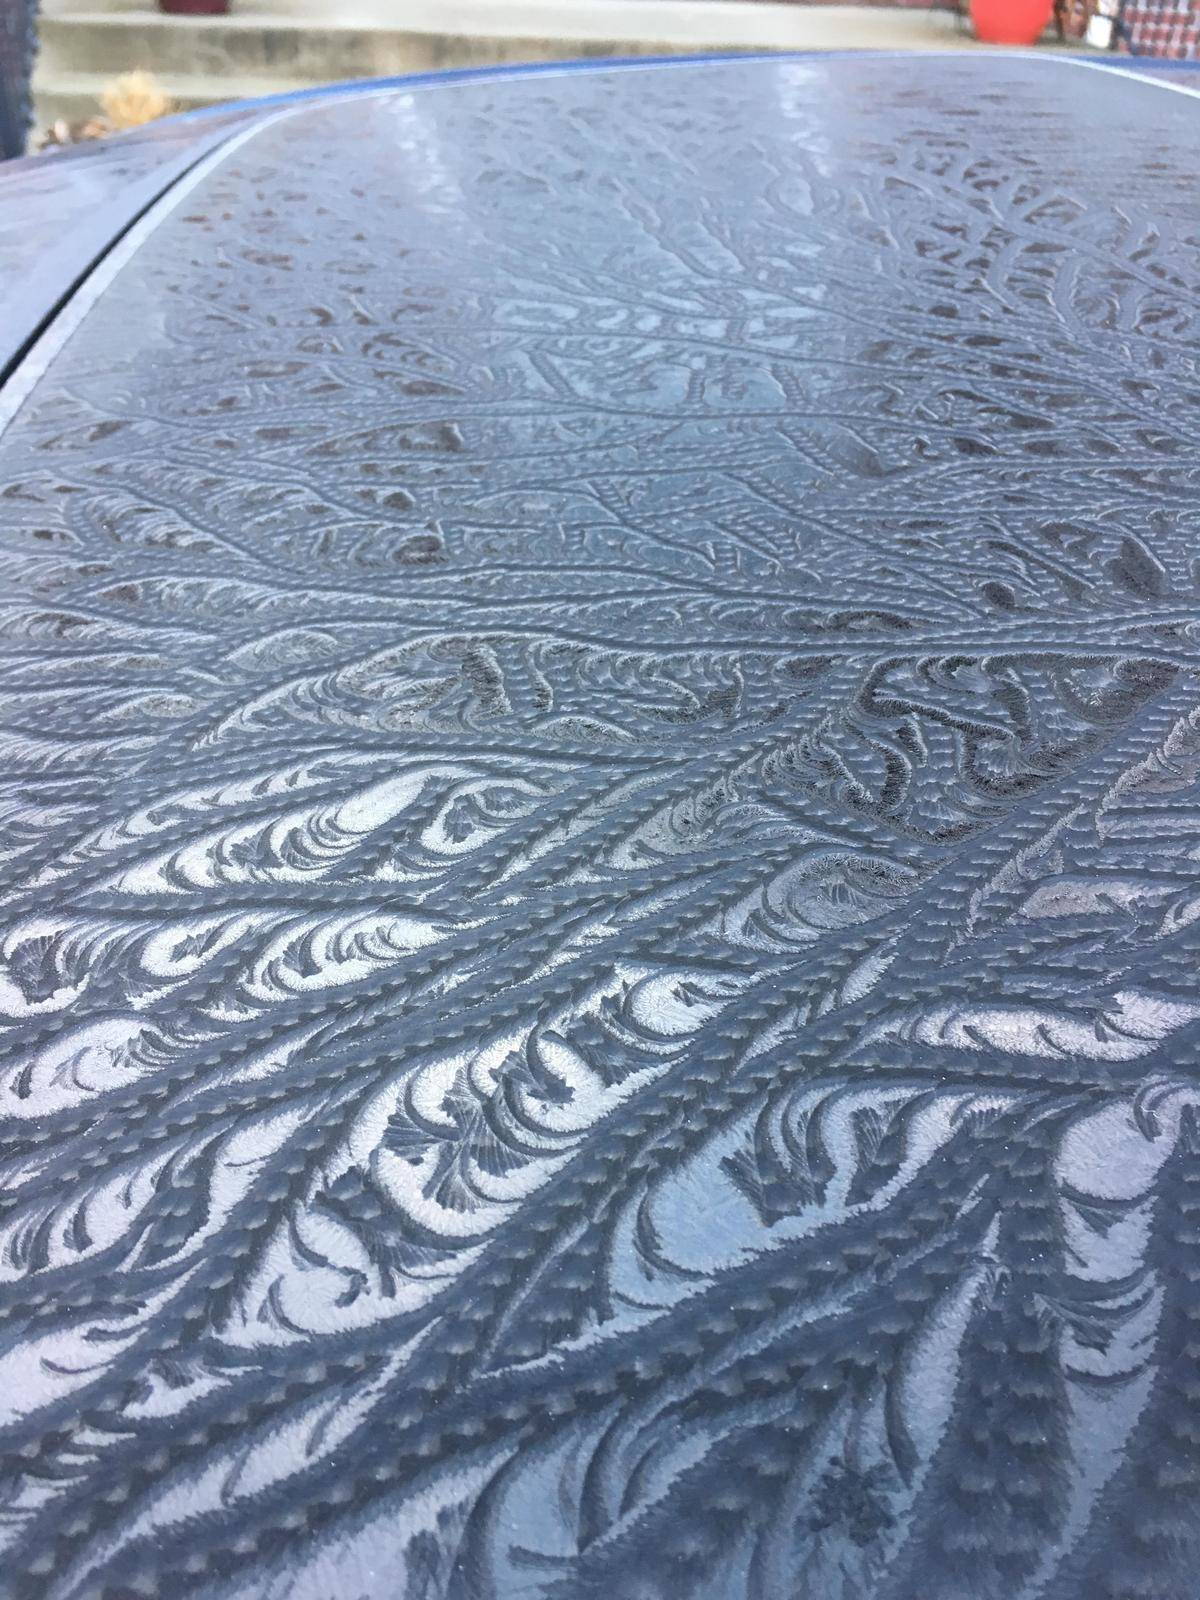 frost on top of car looks like lace pattern